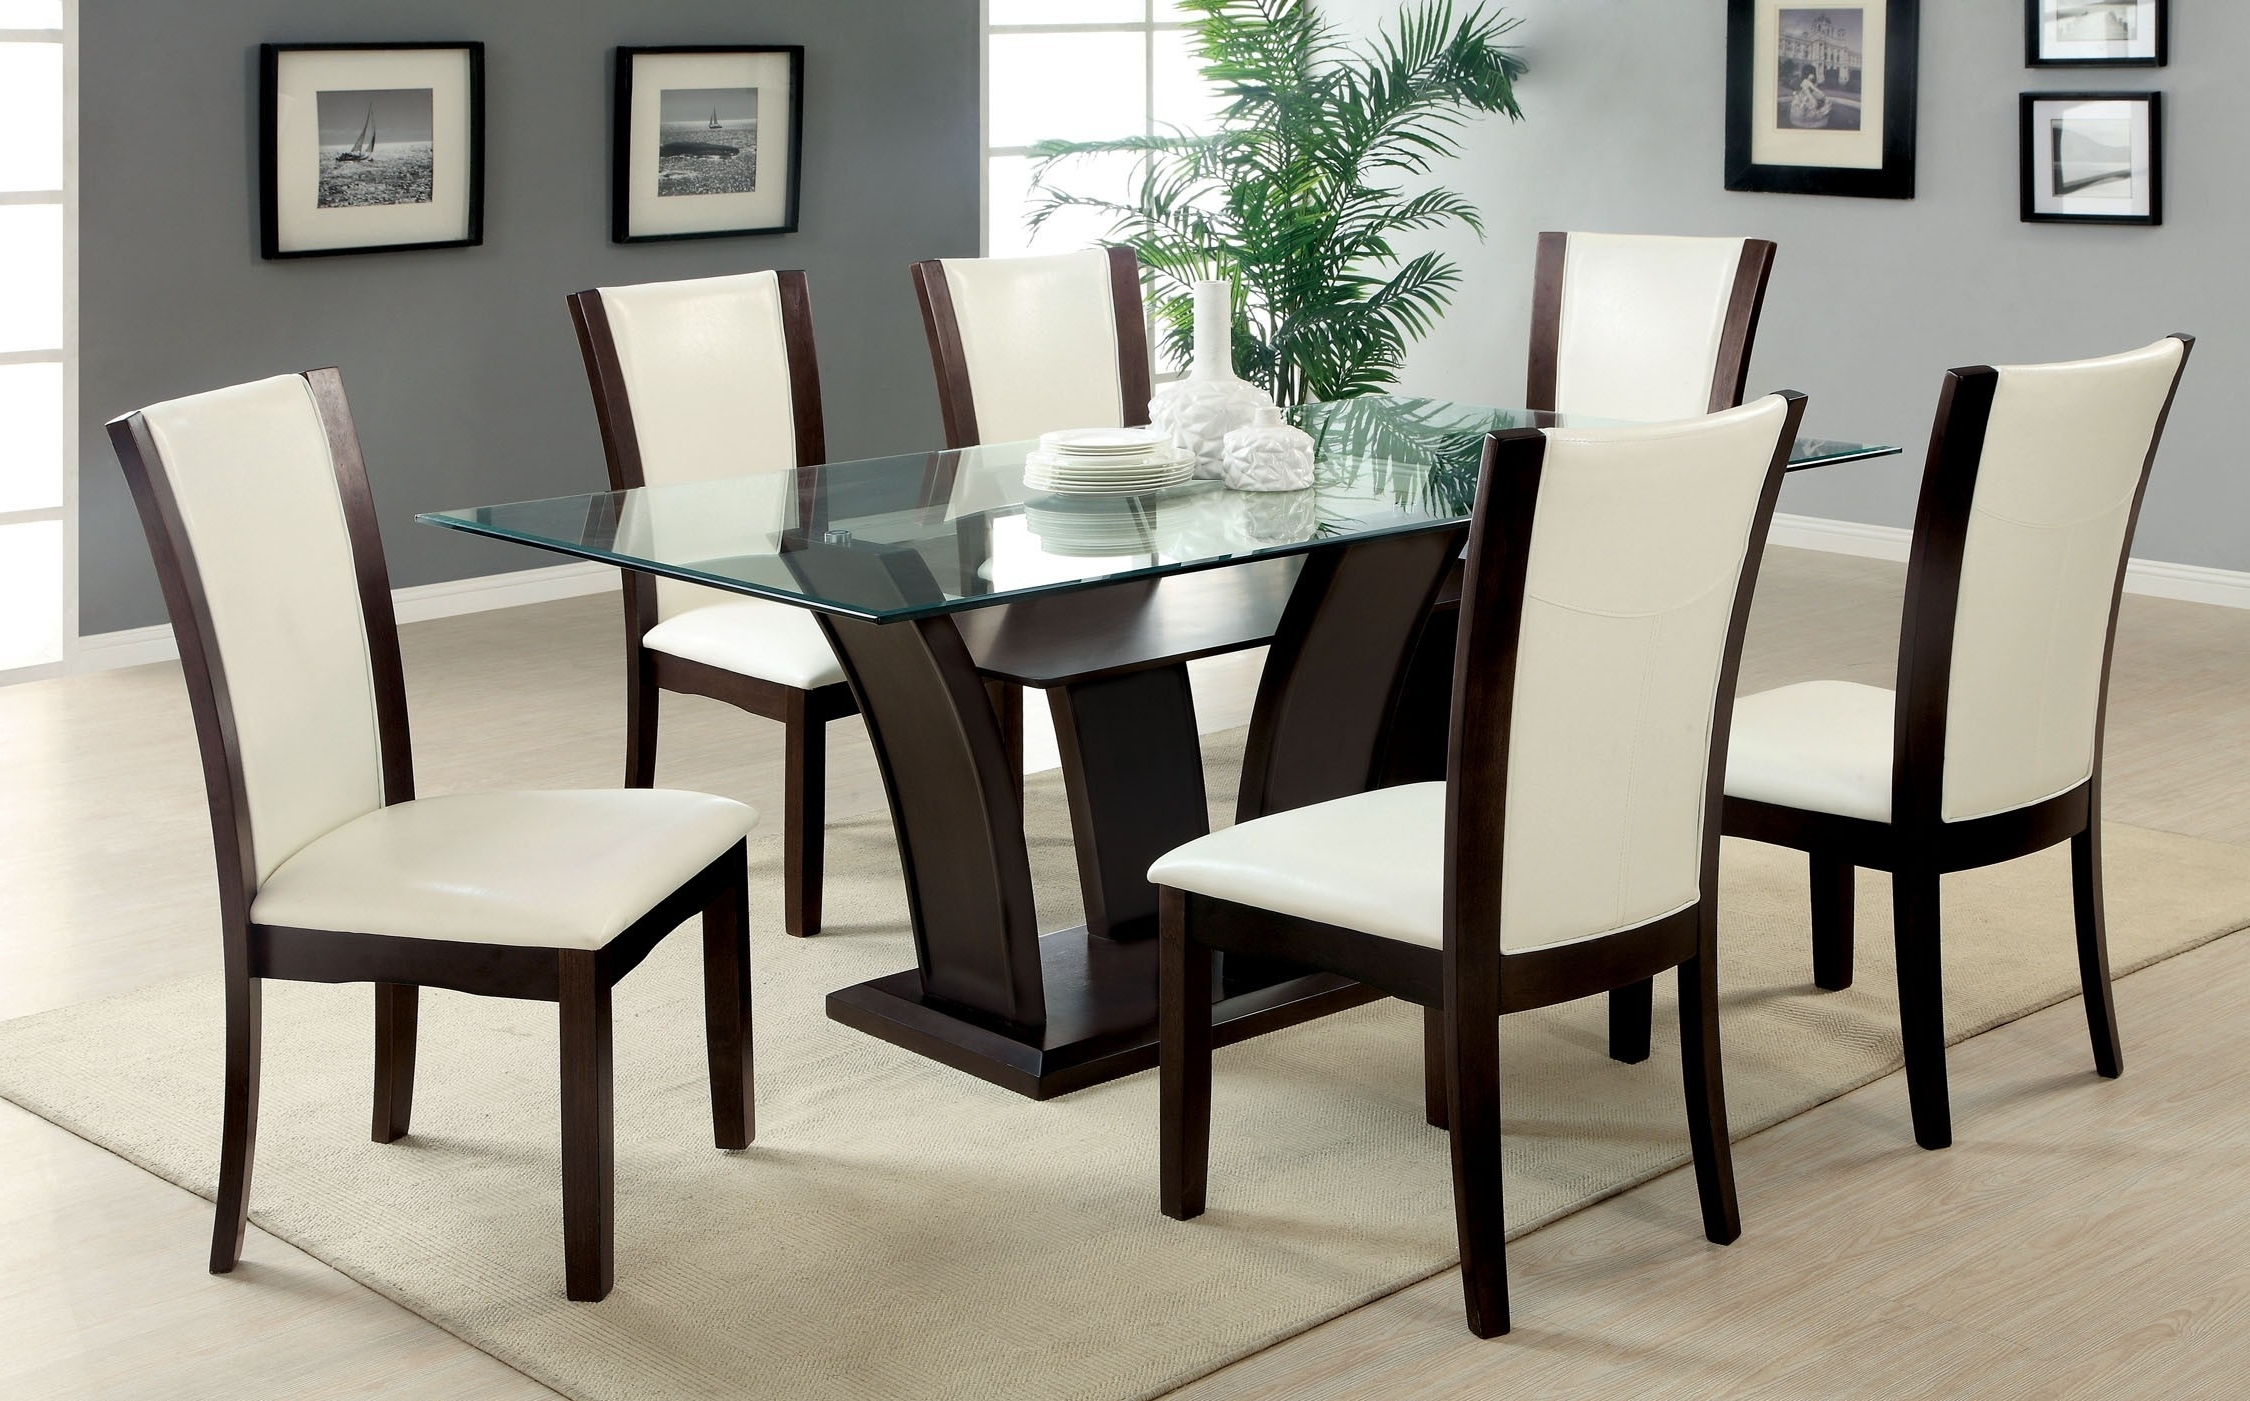 Most Recent 8 Seater Round Dining Table And Chairs With Regard To Glamorous Round Dining Table Set For 8 Dimensions Large Chairs And (View 21 of 25)